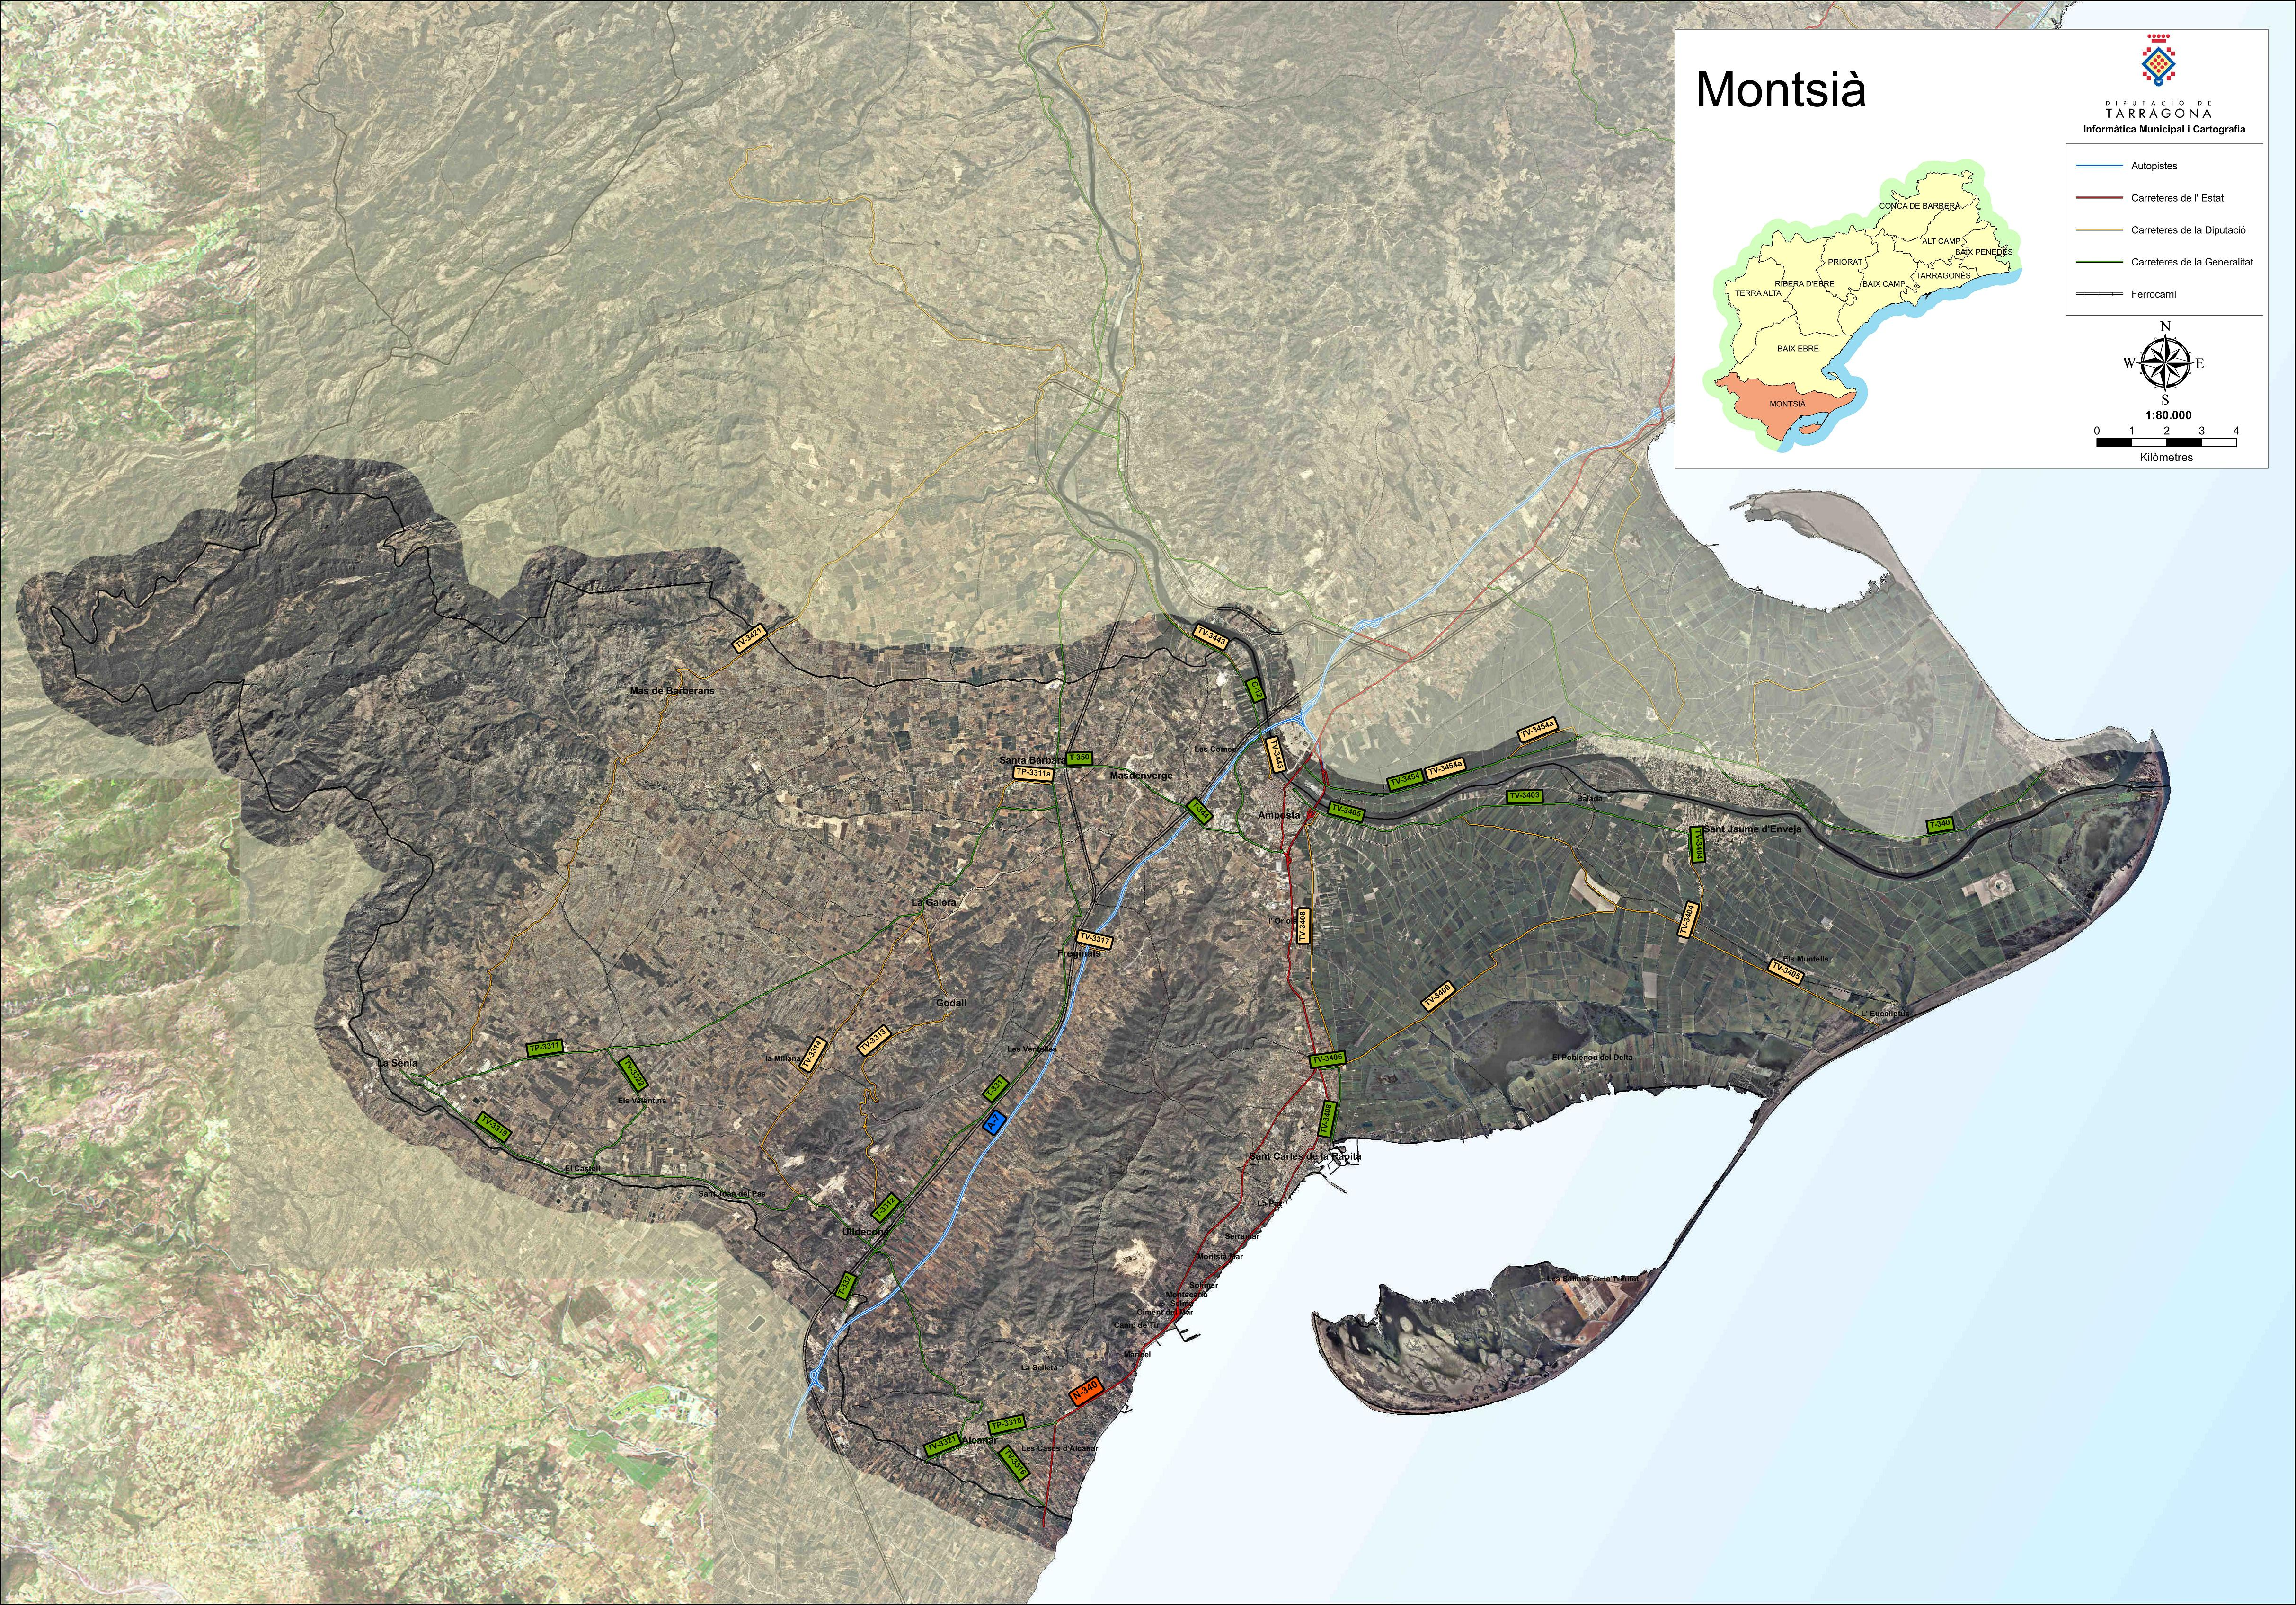 Satellite and road map of the comarca of Montsià